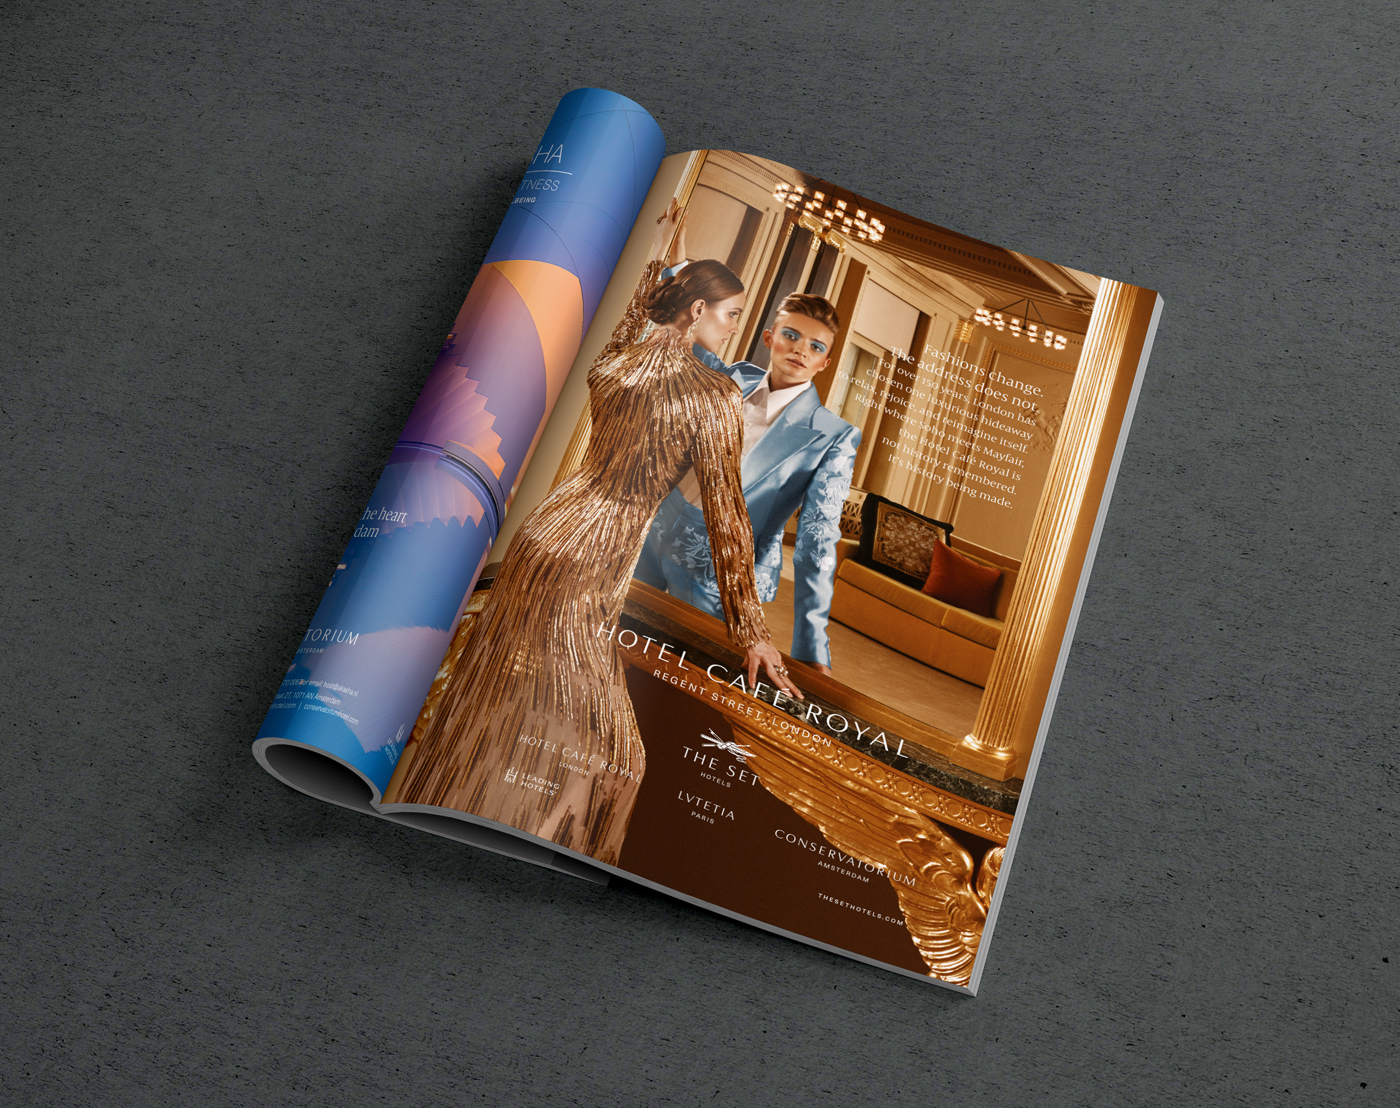 hotel brand development - branding - brand roll-out - Hotel Cafe royal brochure